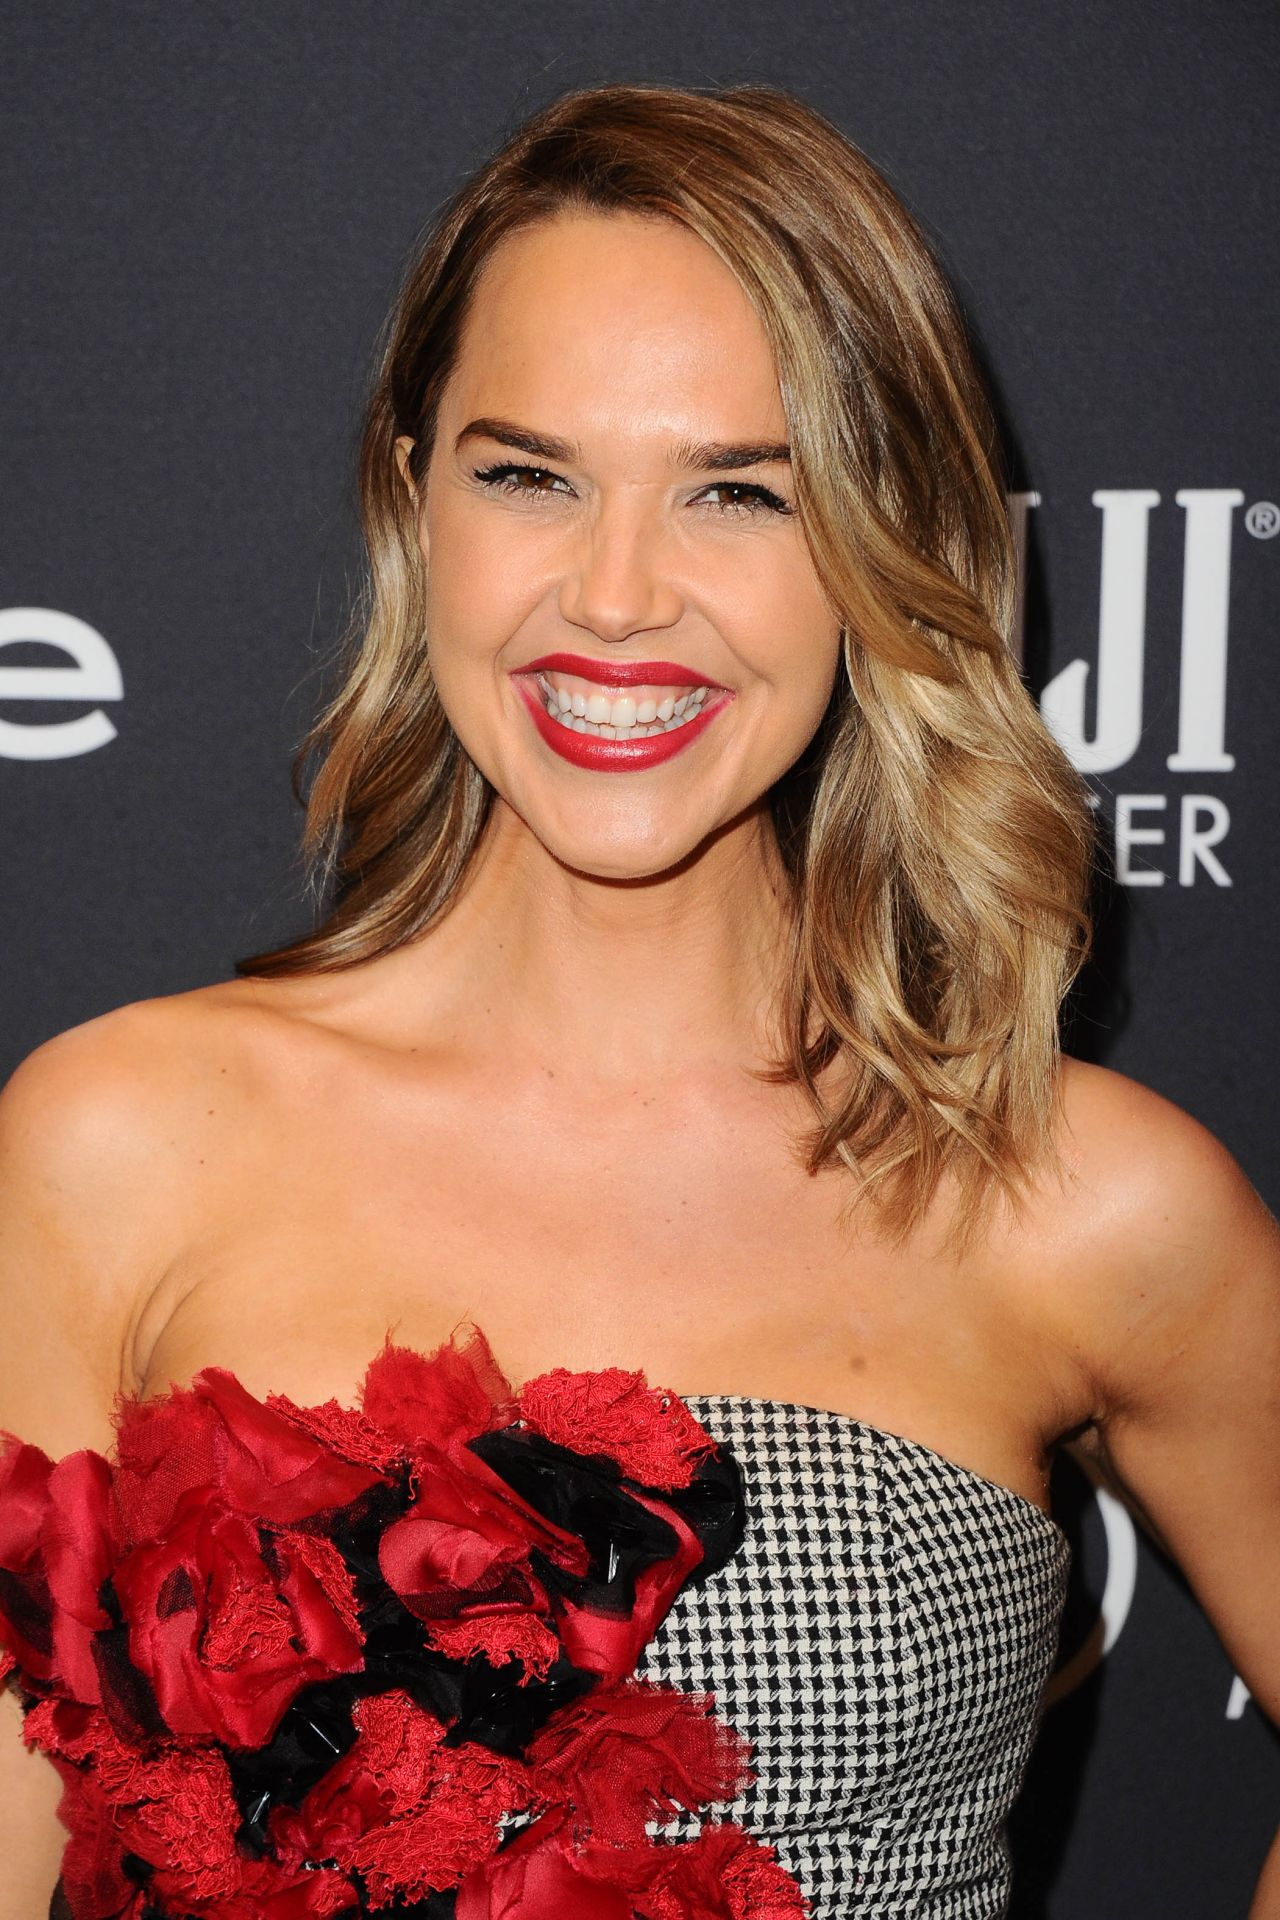 Arielle kebbel hfpa and instyle celebrate golden globe season in los angeles new photo